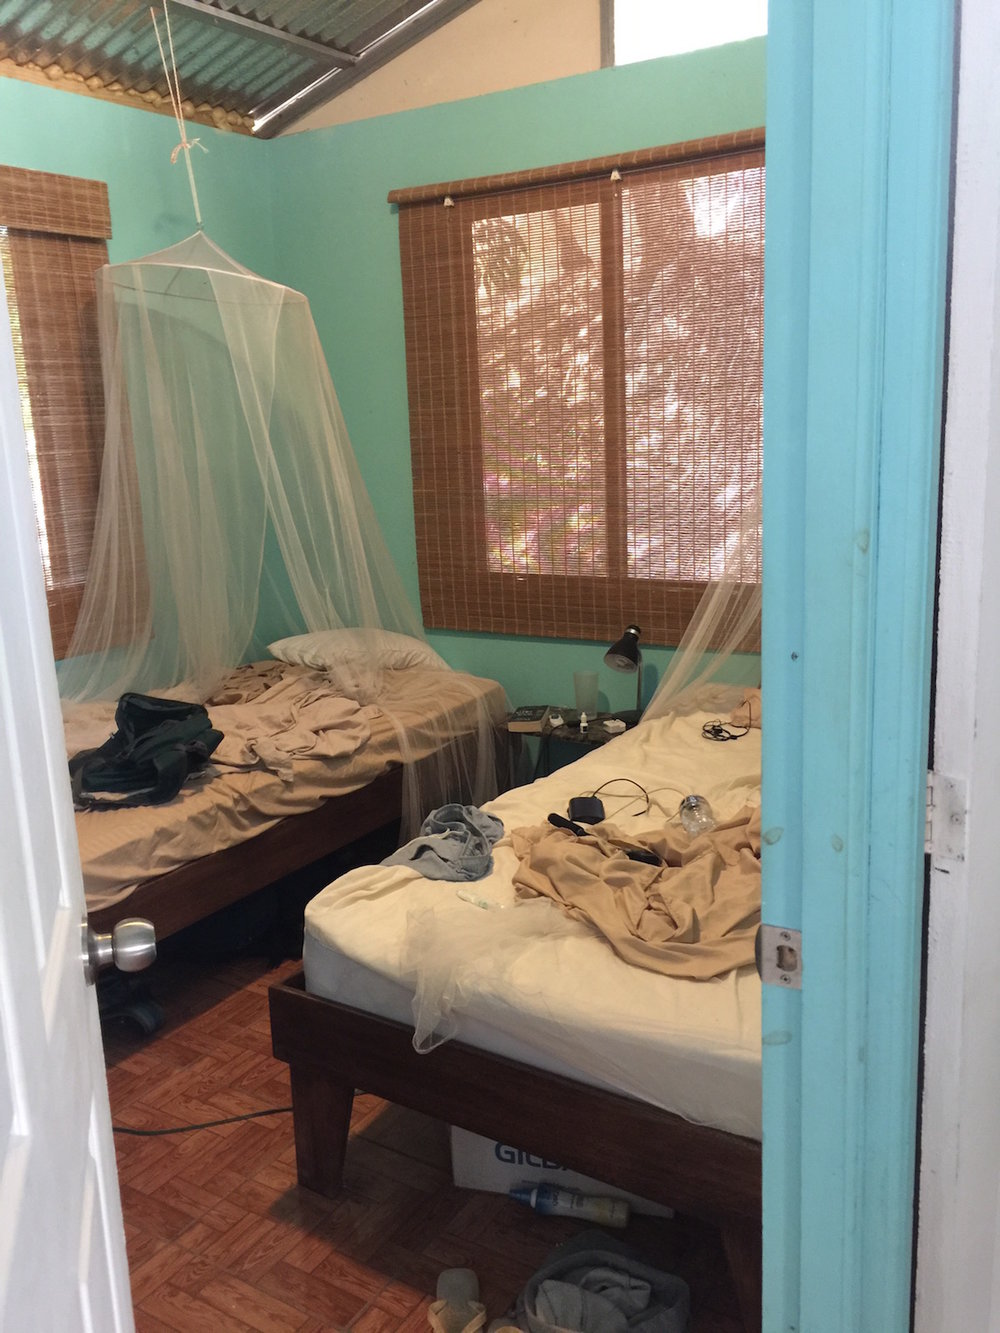 Bedrooms for Volunteer Program